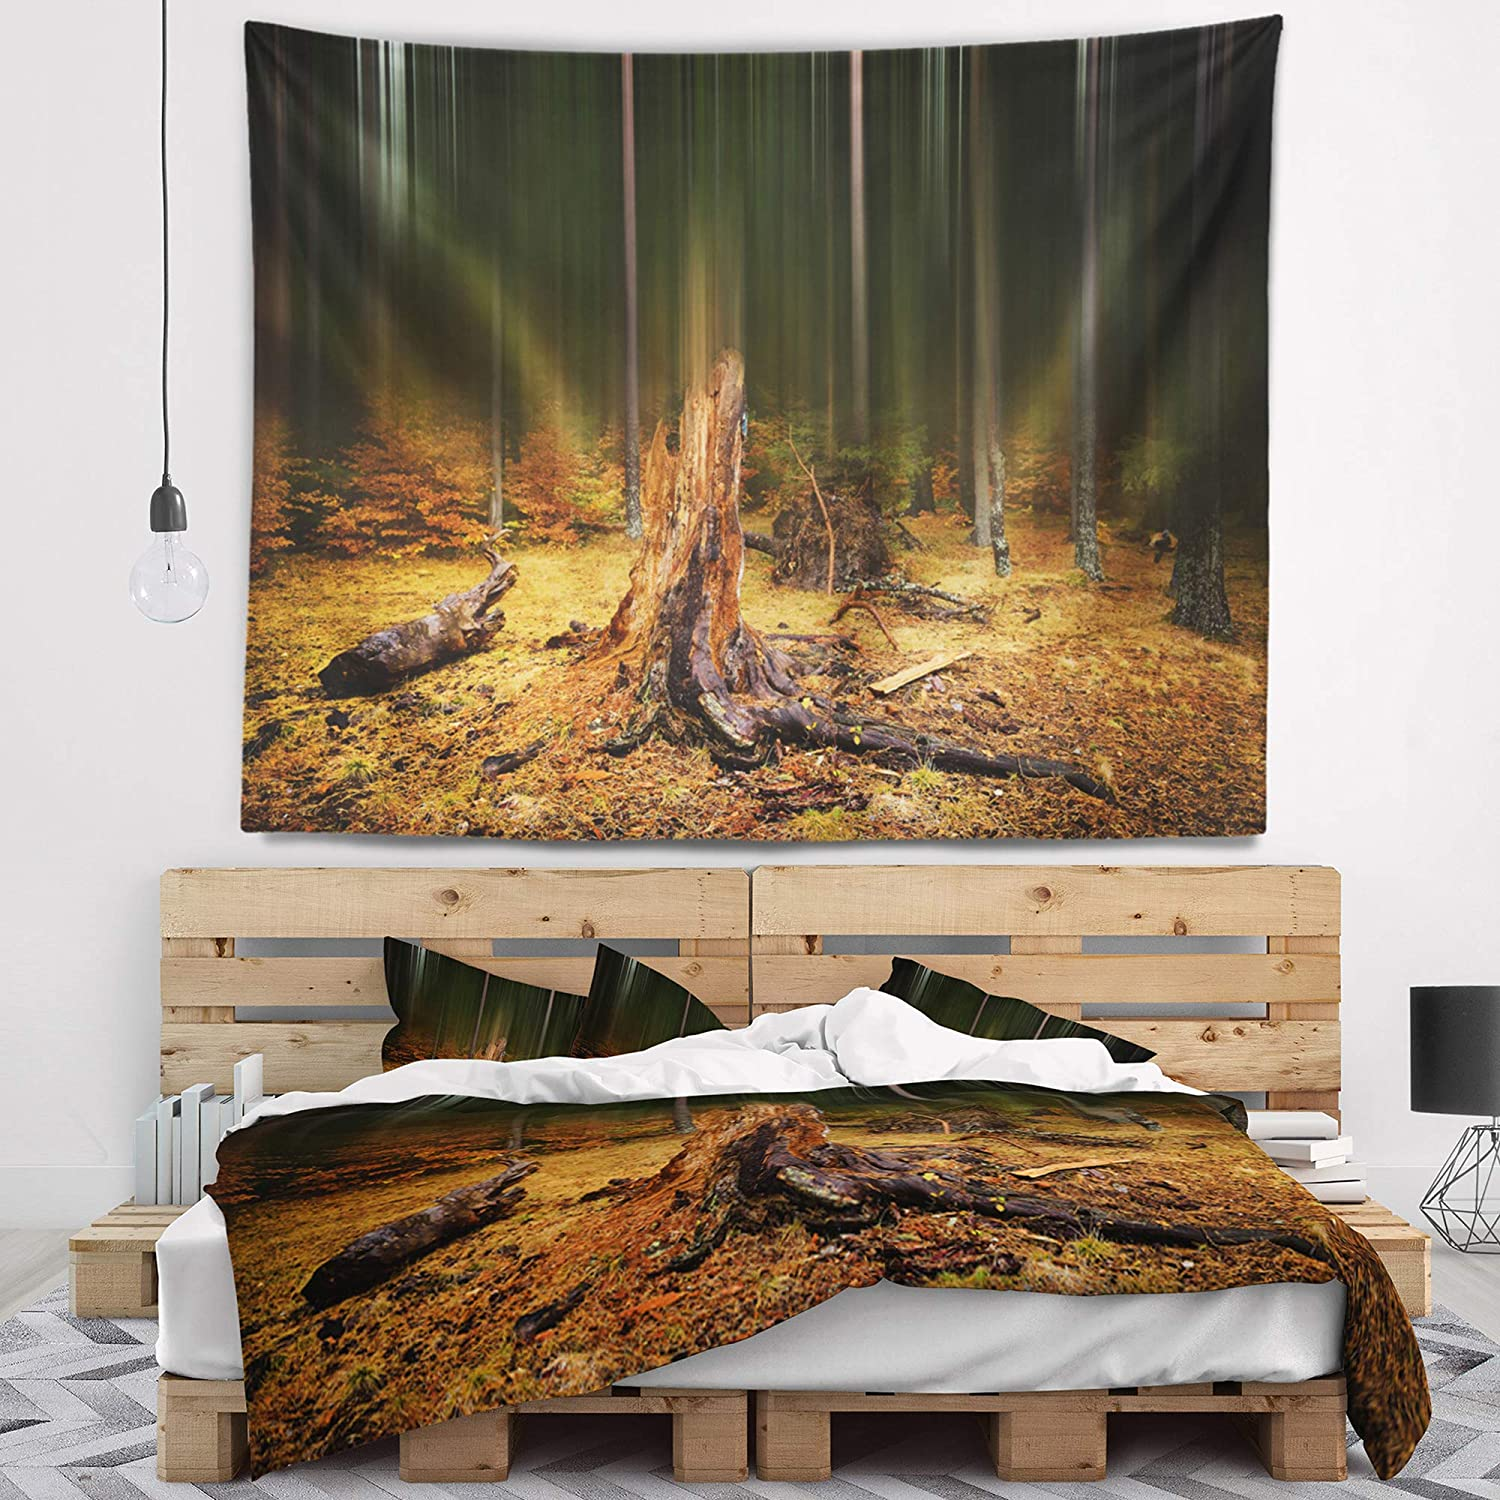 Designart TAP15422-39-32 ' Dark Fall Forest on Foggy Morning' Landscape Blanket Décor Art for Home and Office Wall Tapestry Medium: 39 in. x 32 in. Created On Lightweight Polyester Fabric